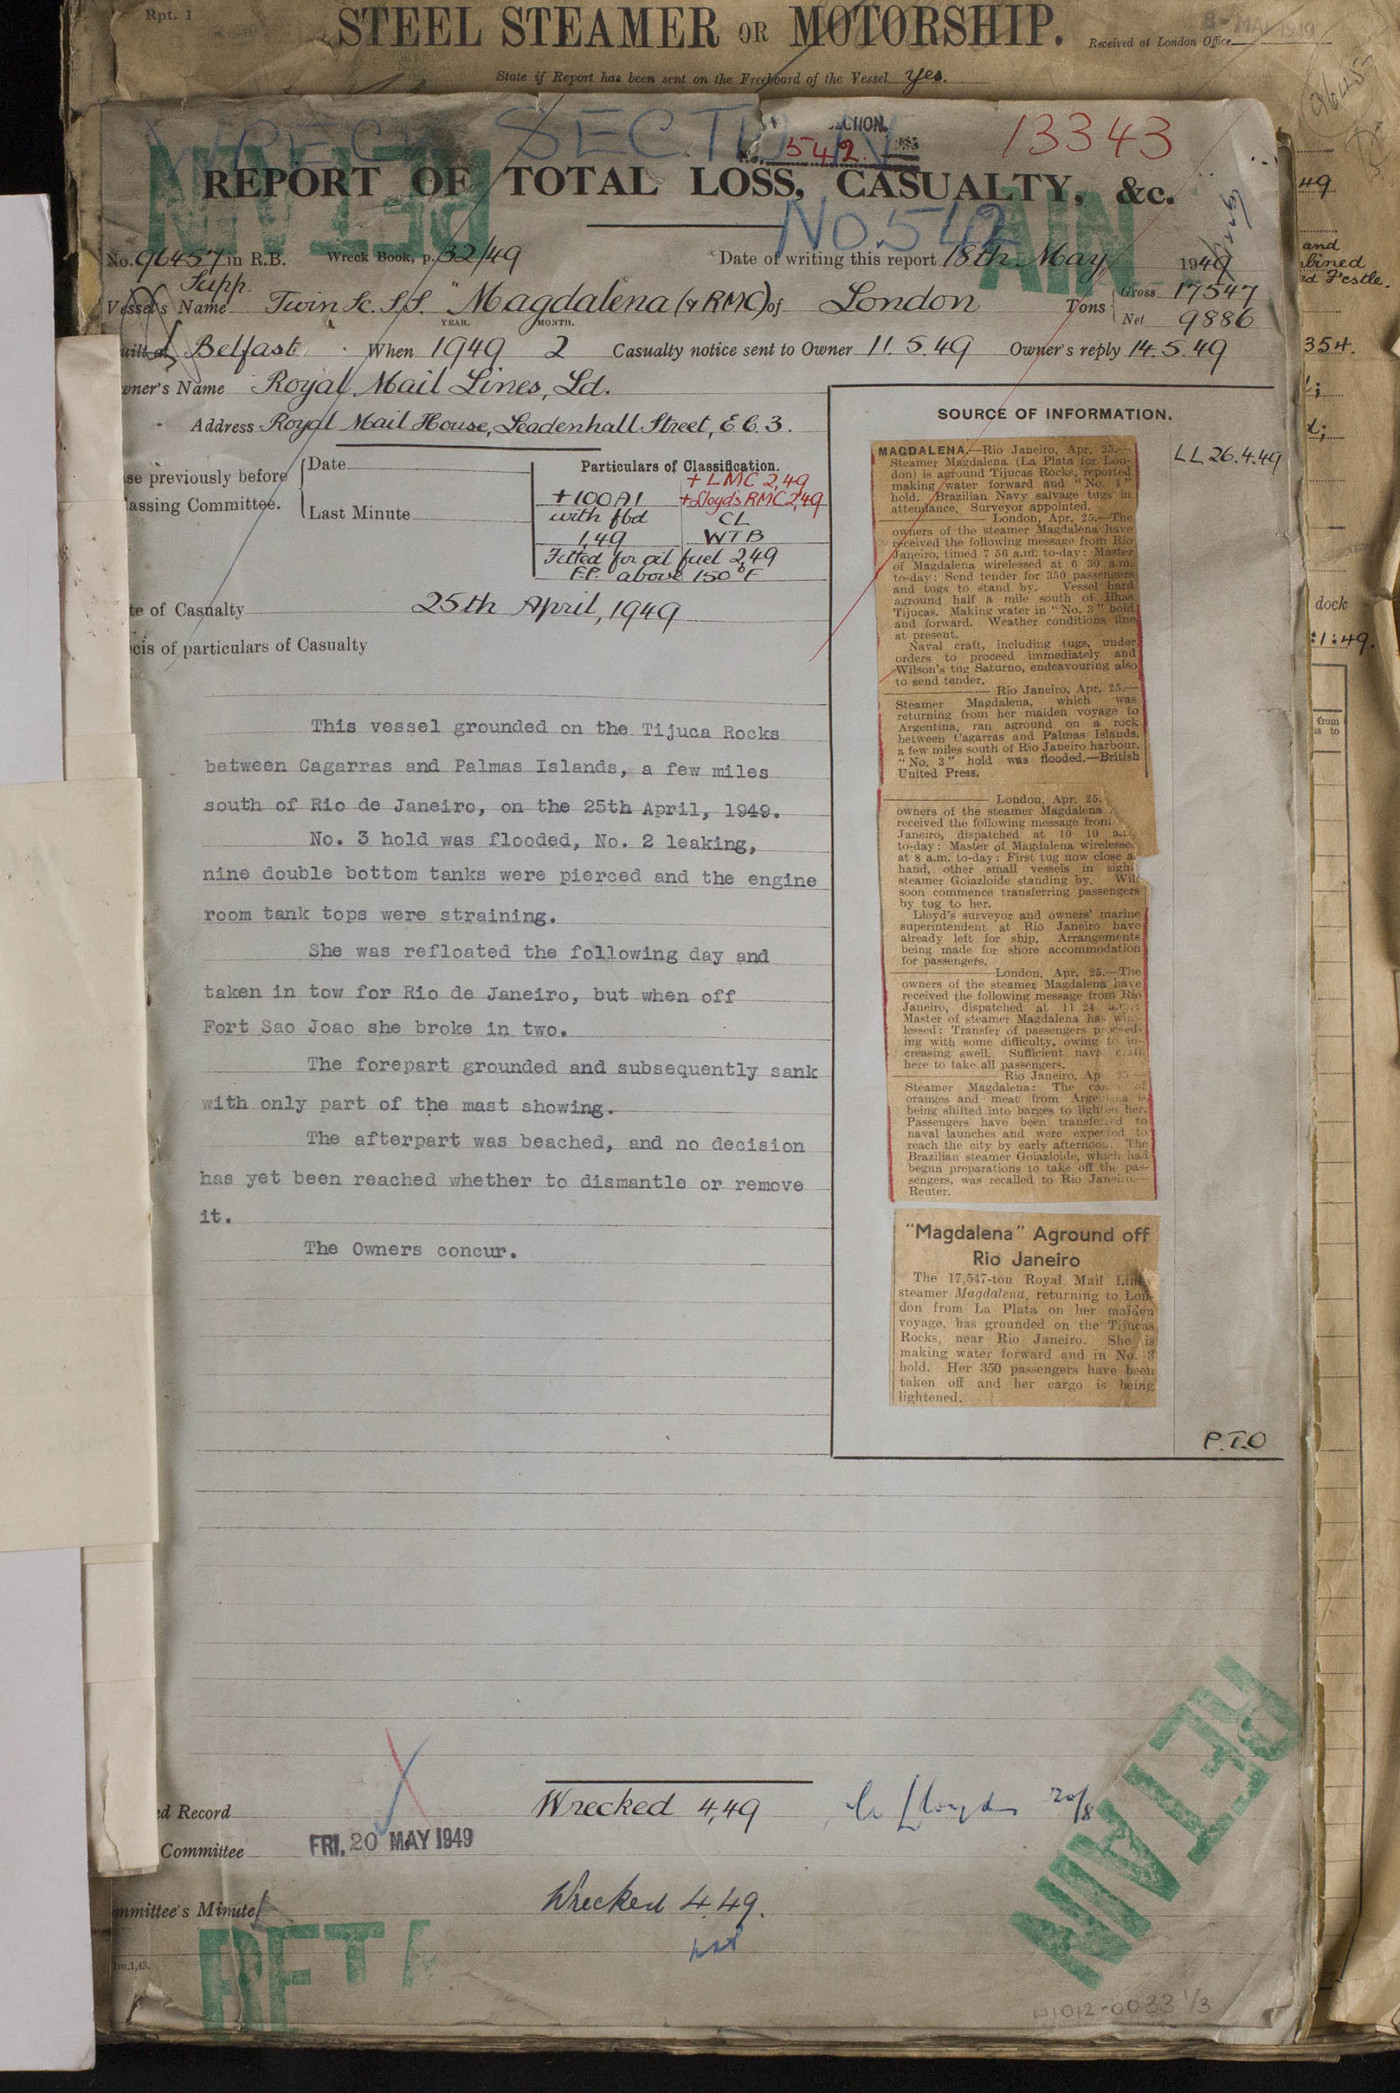 Report of Total Loss and Casualty for Magdalena, 18th May 1949